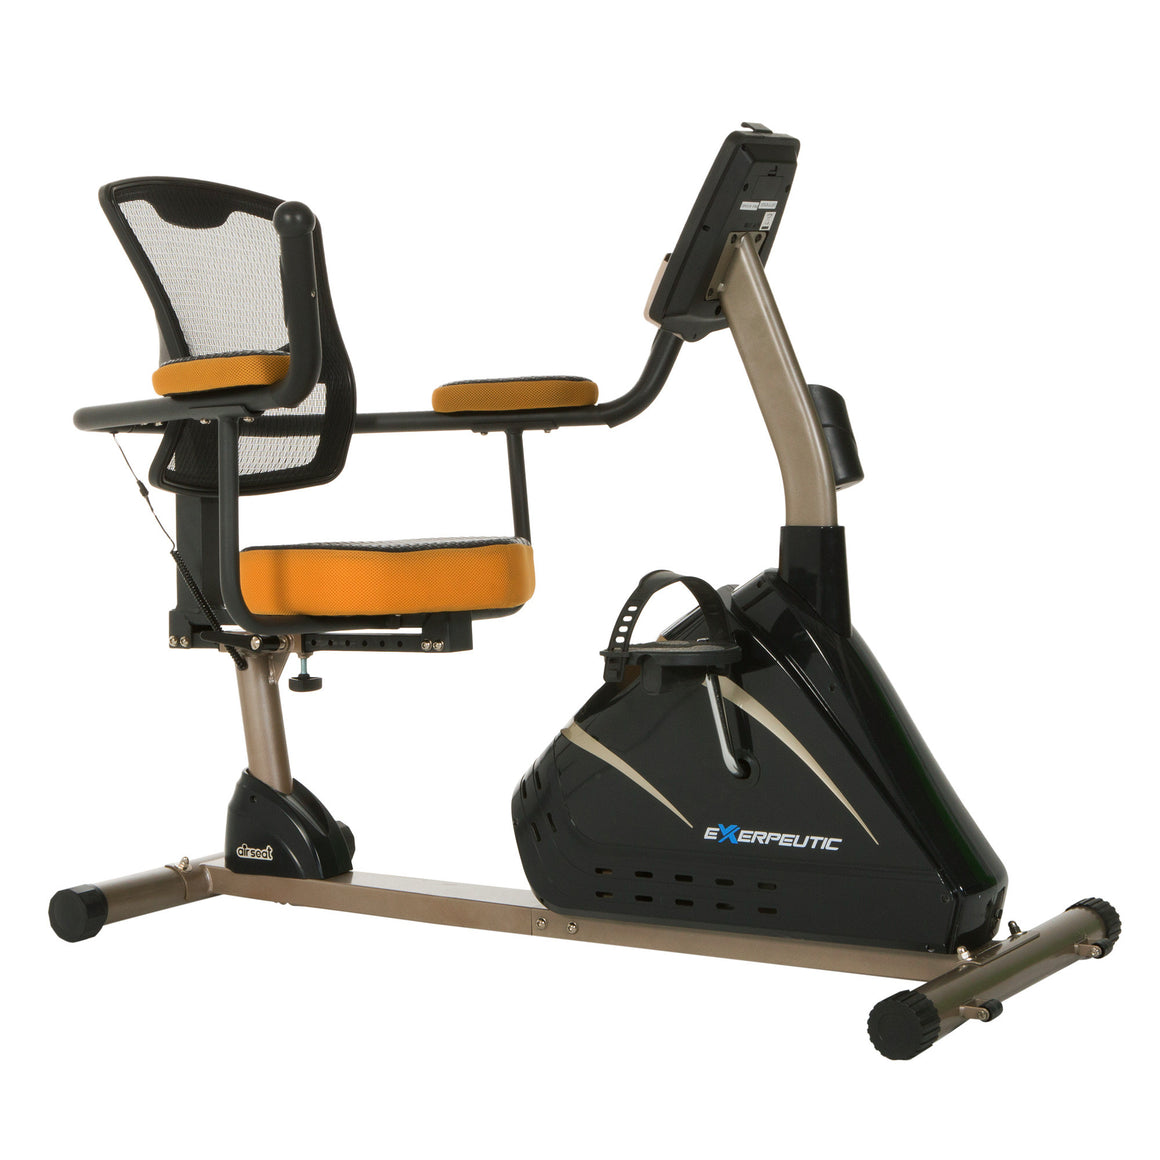 4000 Magnetic Recumbent Bike with Mobile App Tracking - Indoor Cyclery